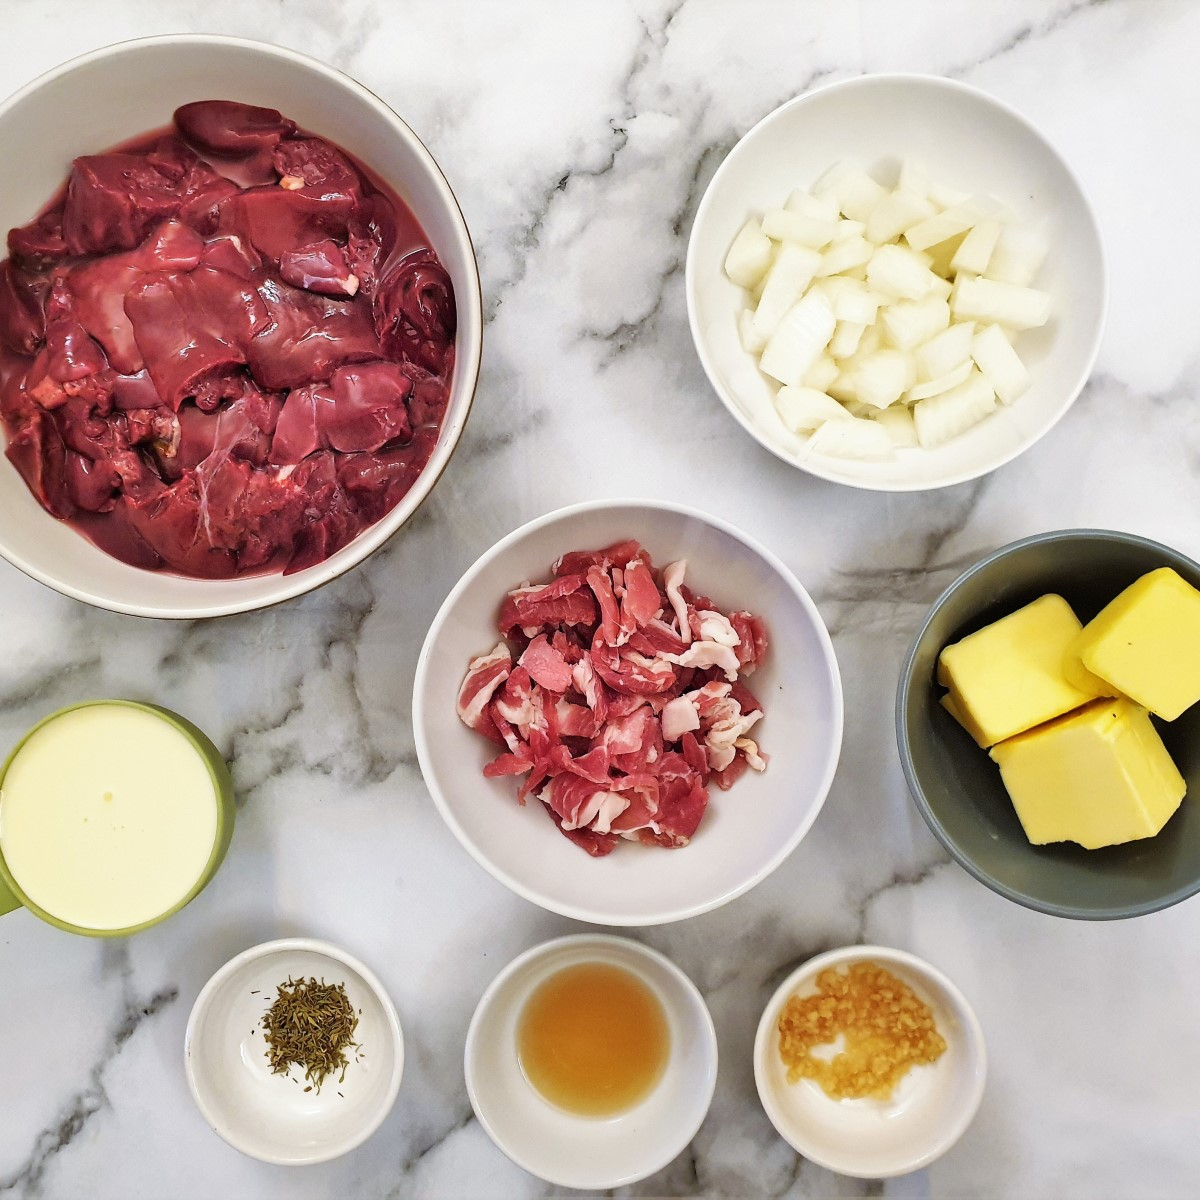 Ingredients for chicken liver pate.